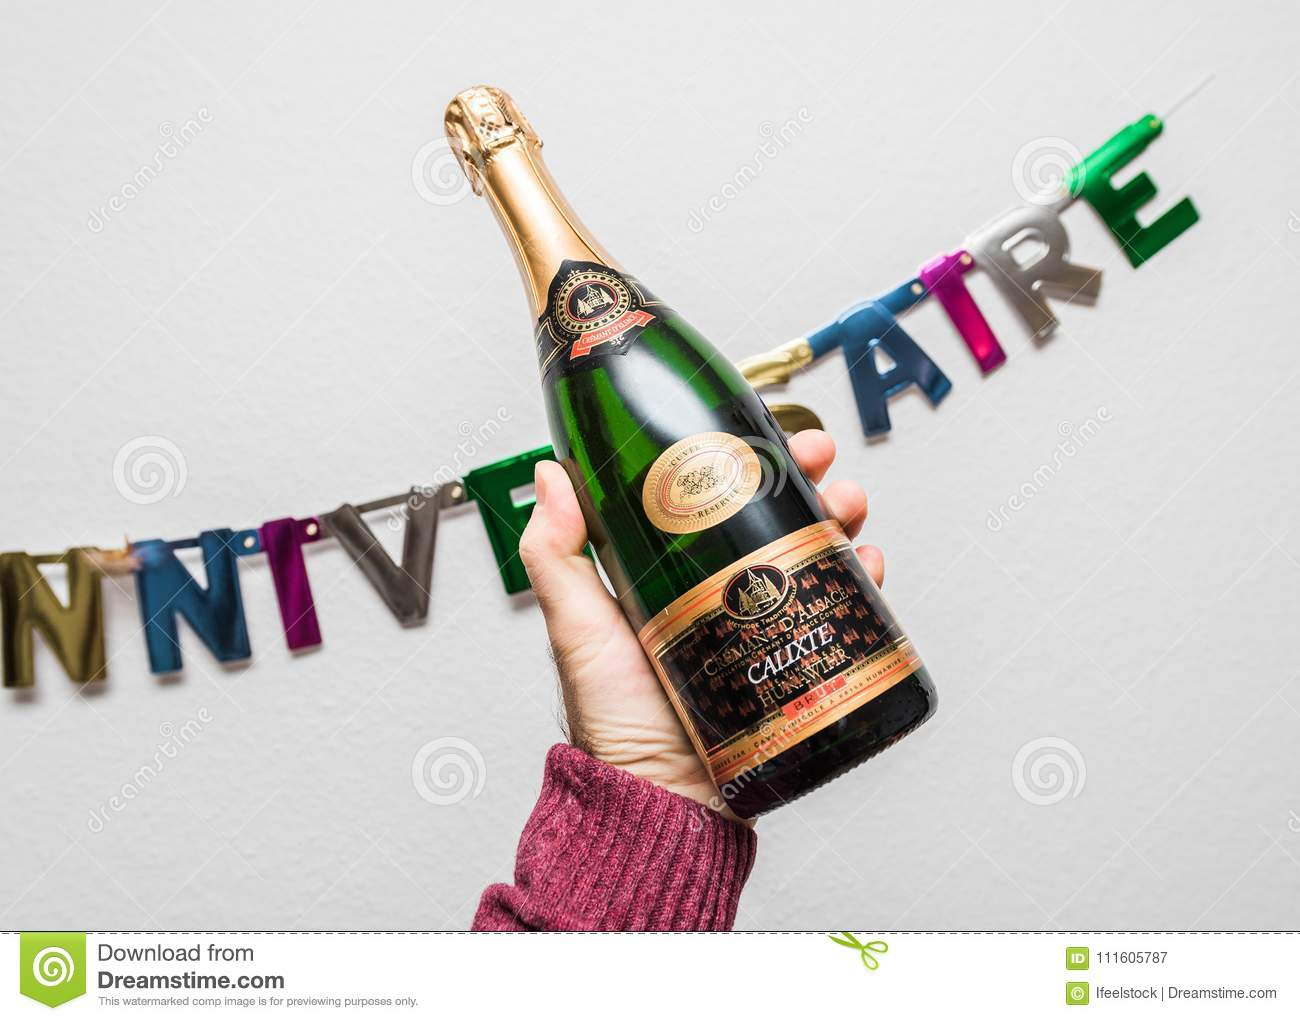 Cremant D Alsace Calixte Hunawihr In Male Hand Against Joyeux An